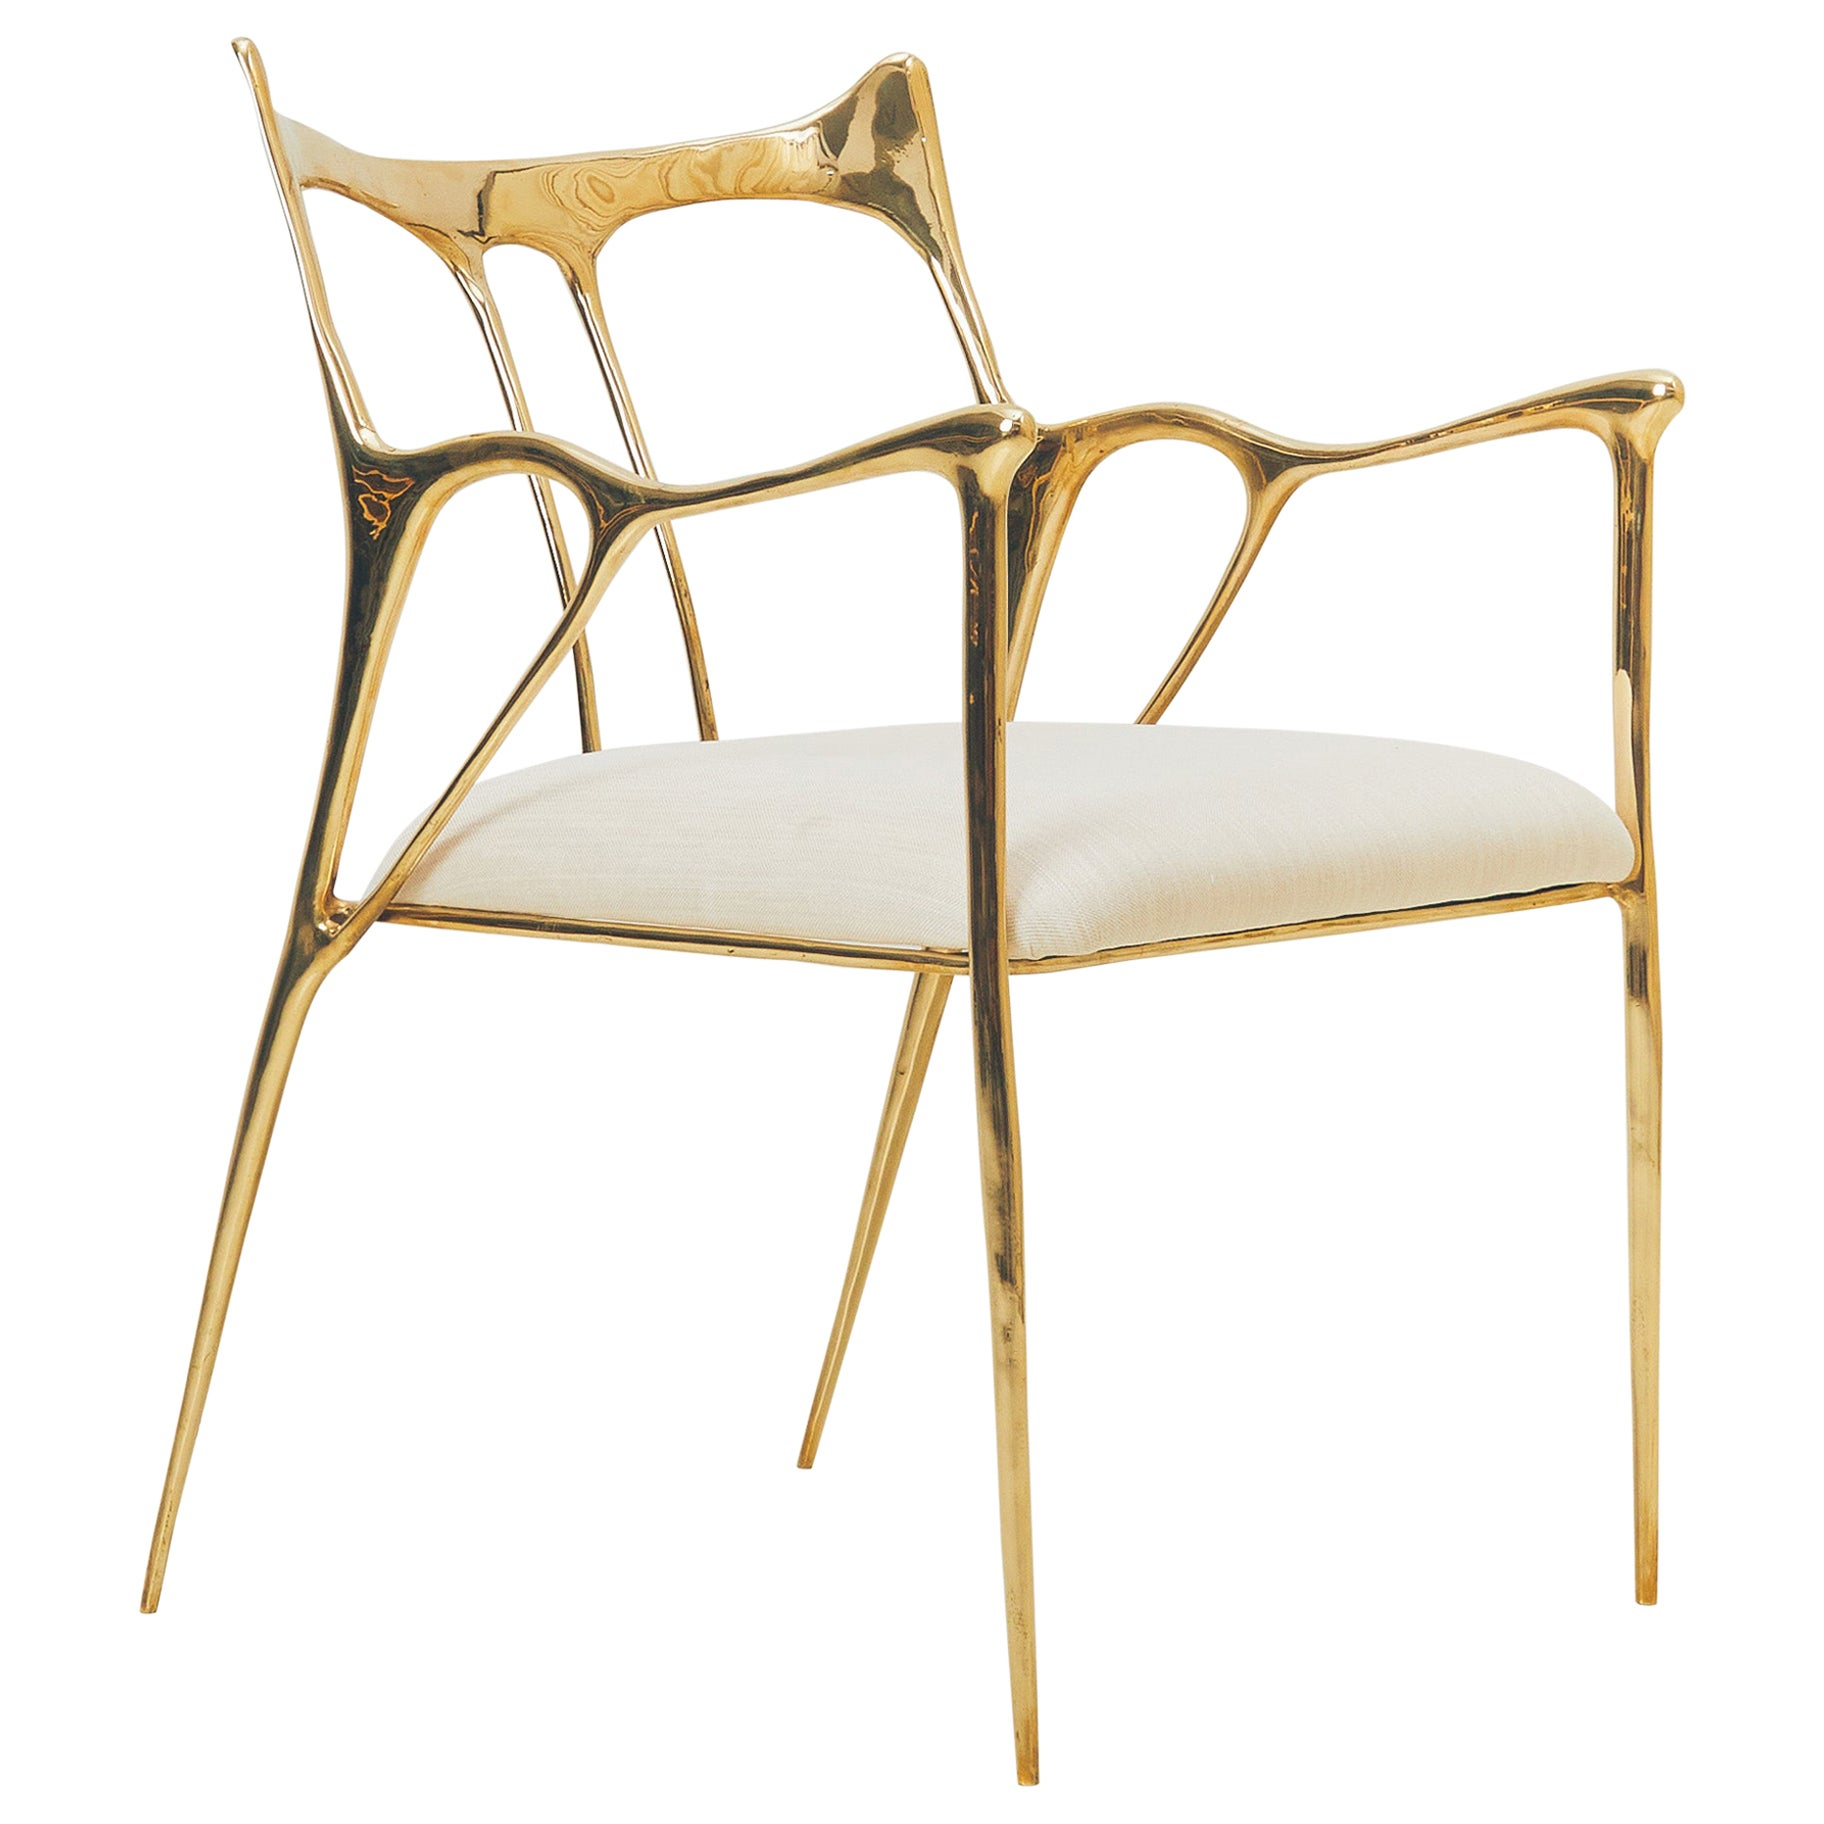 Calligraphic Sculpted Brass Chair by Misaya